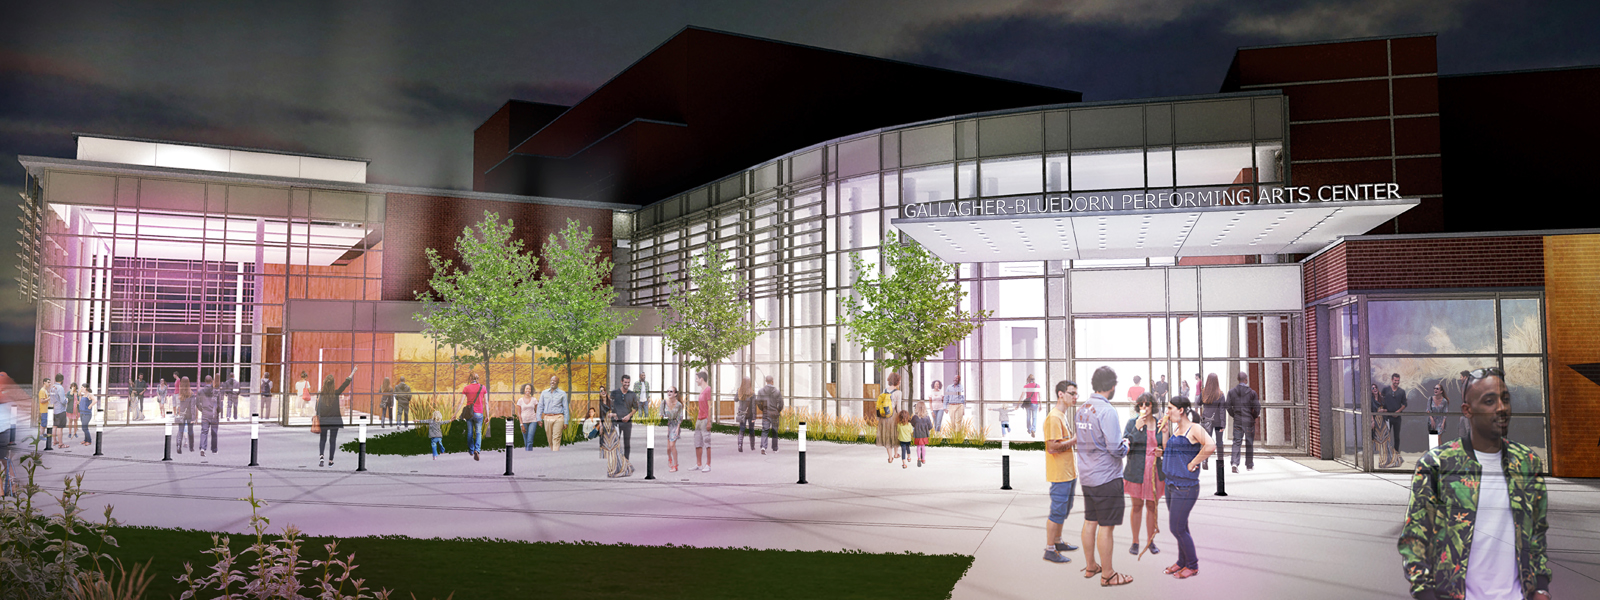 A rendering of proposed renovations to the Gallagher Bluedorn